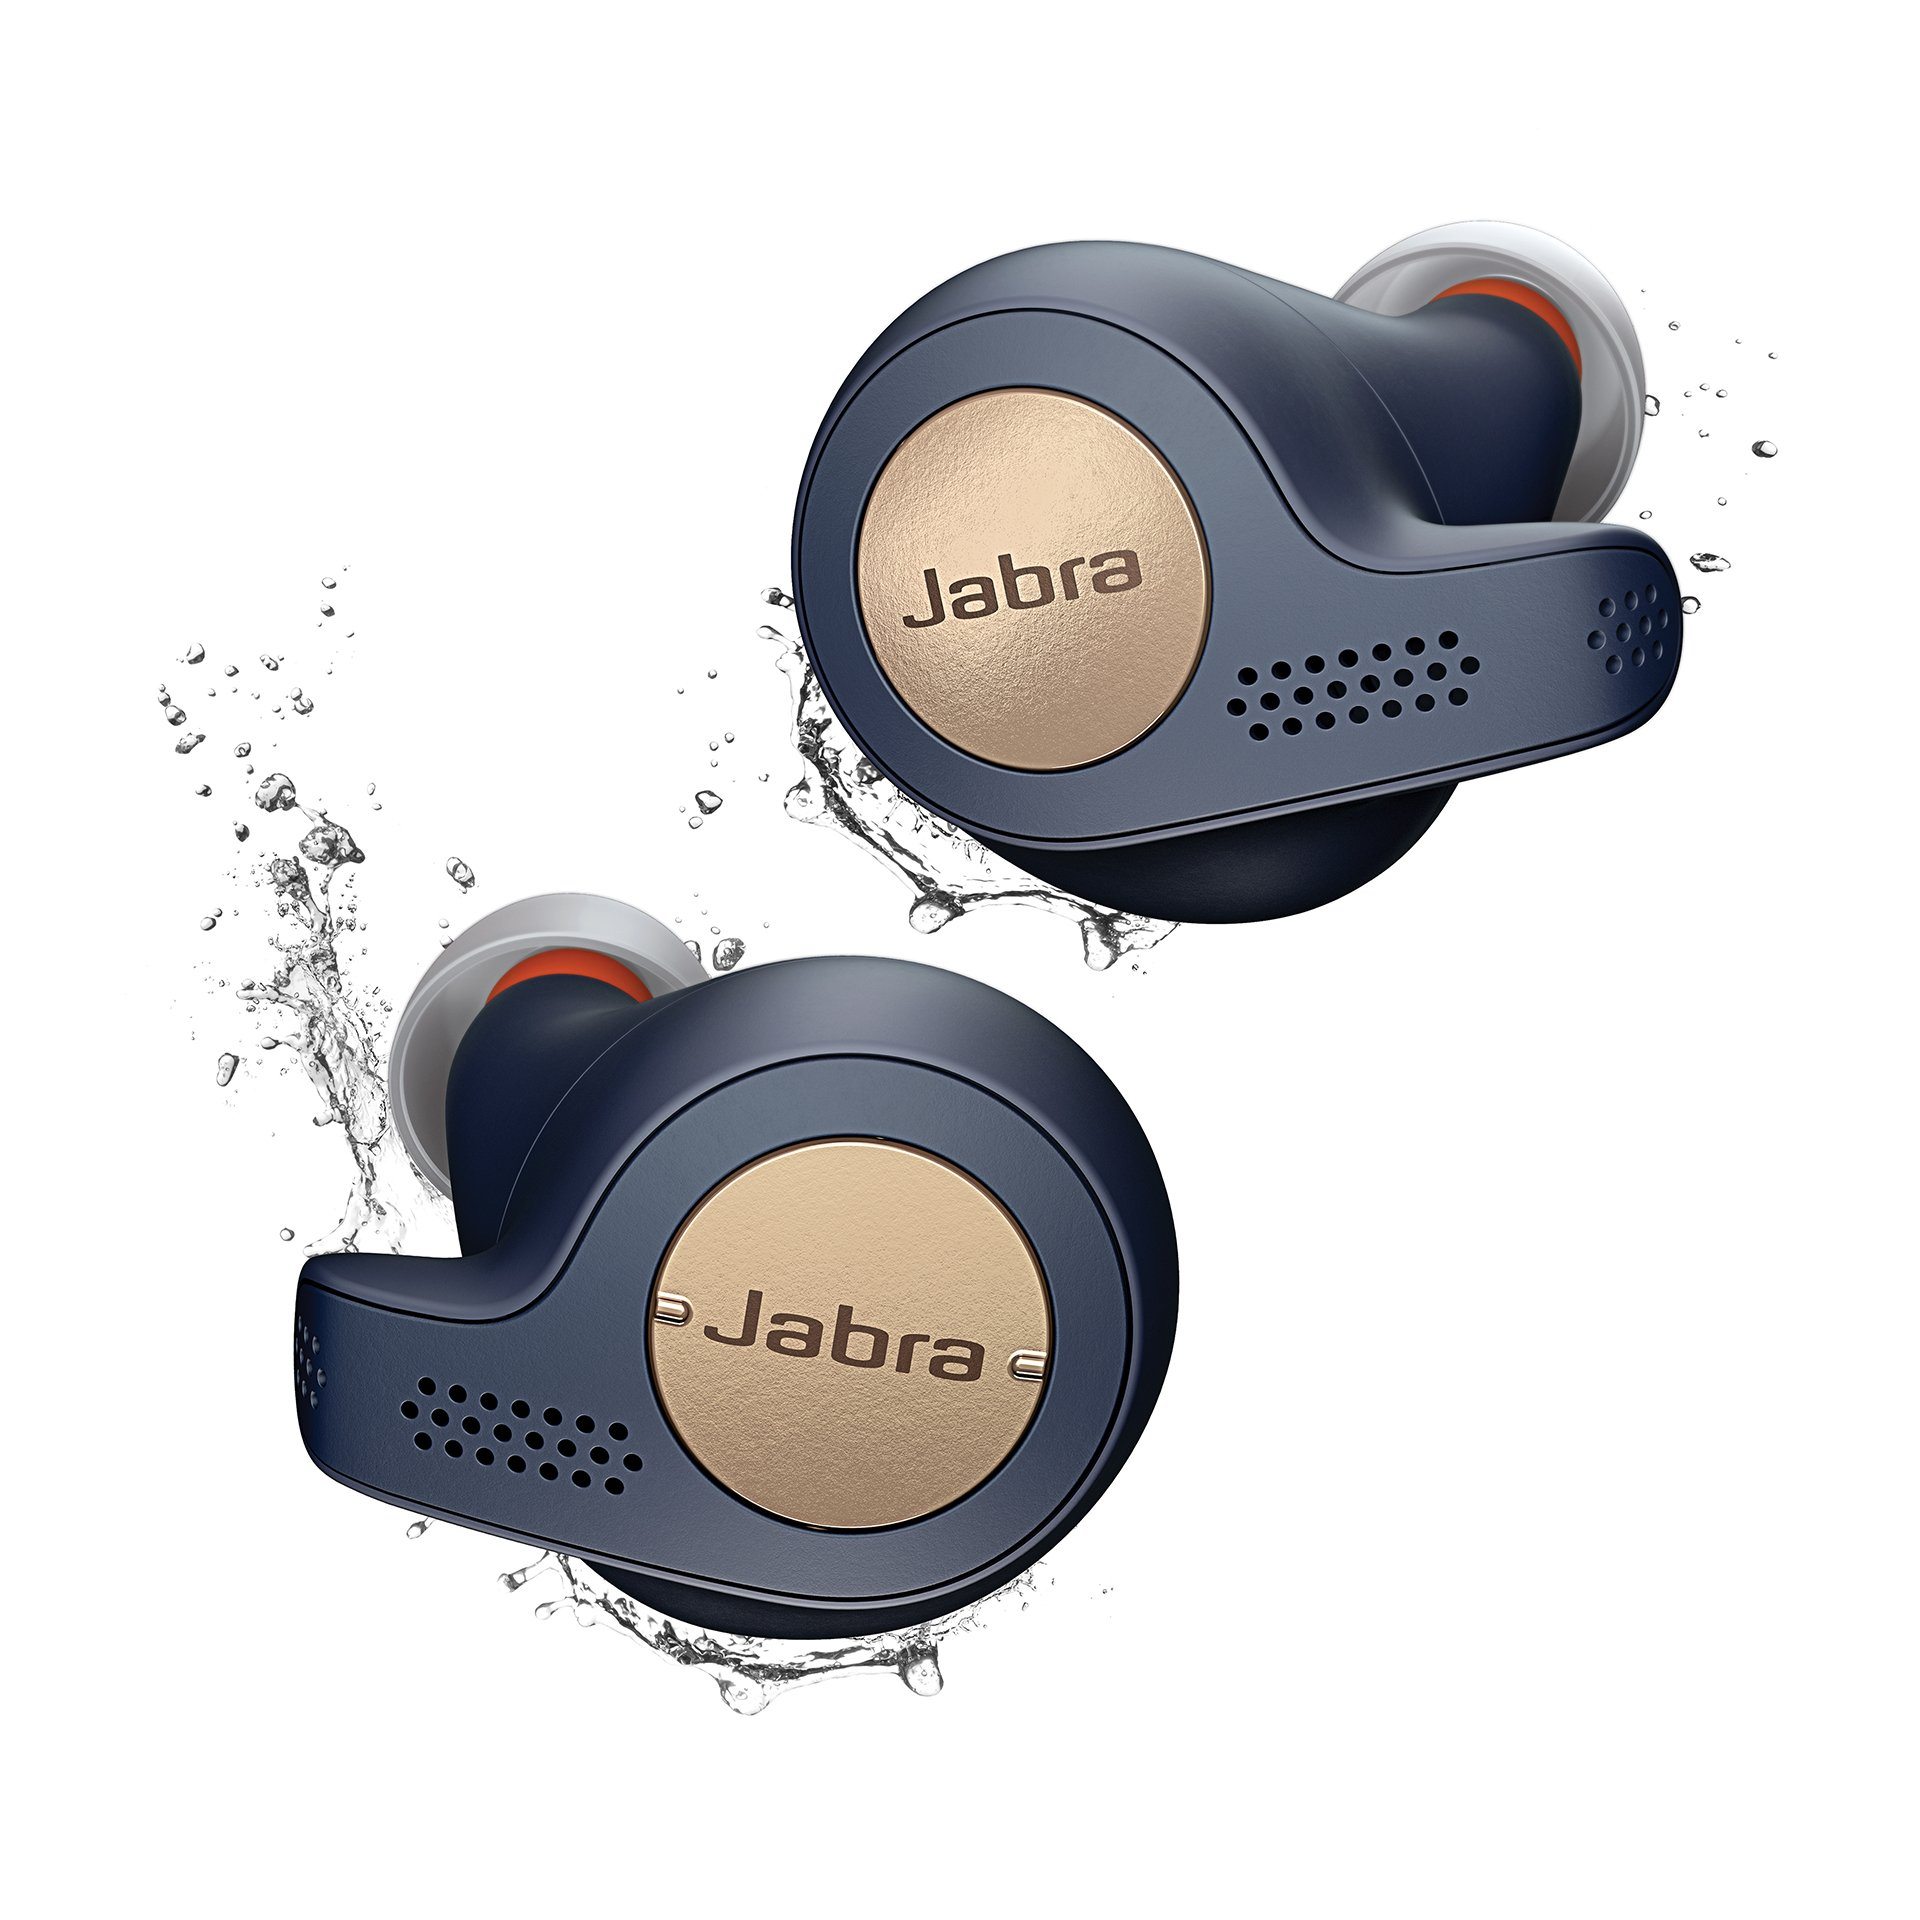 Jabra Elite Active 65t Earbuds - True Wireless Earbuds with Charging Case, Copper Blue - Bluetooth Earbuds with a Secure Fit and Superior Sound, Long Battery Life and More by Jabra